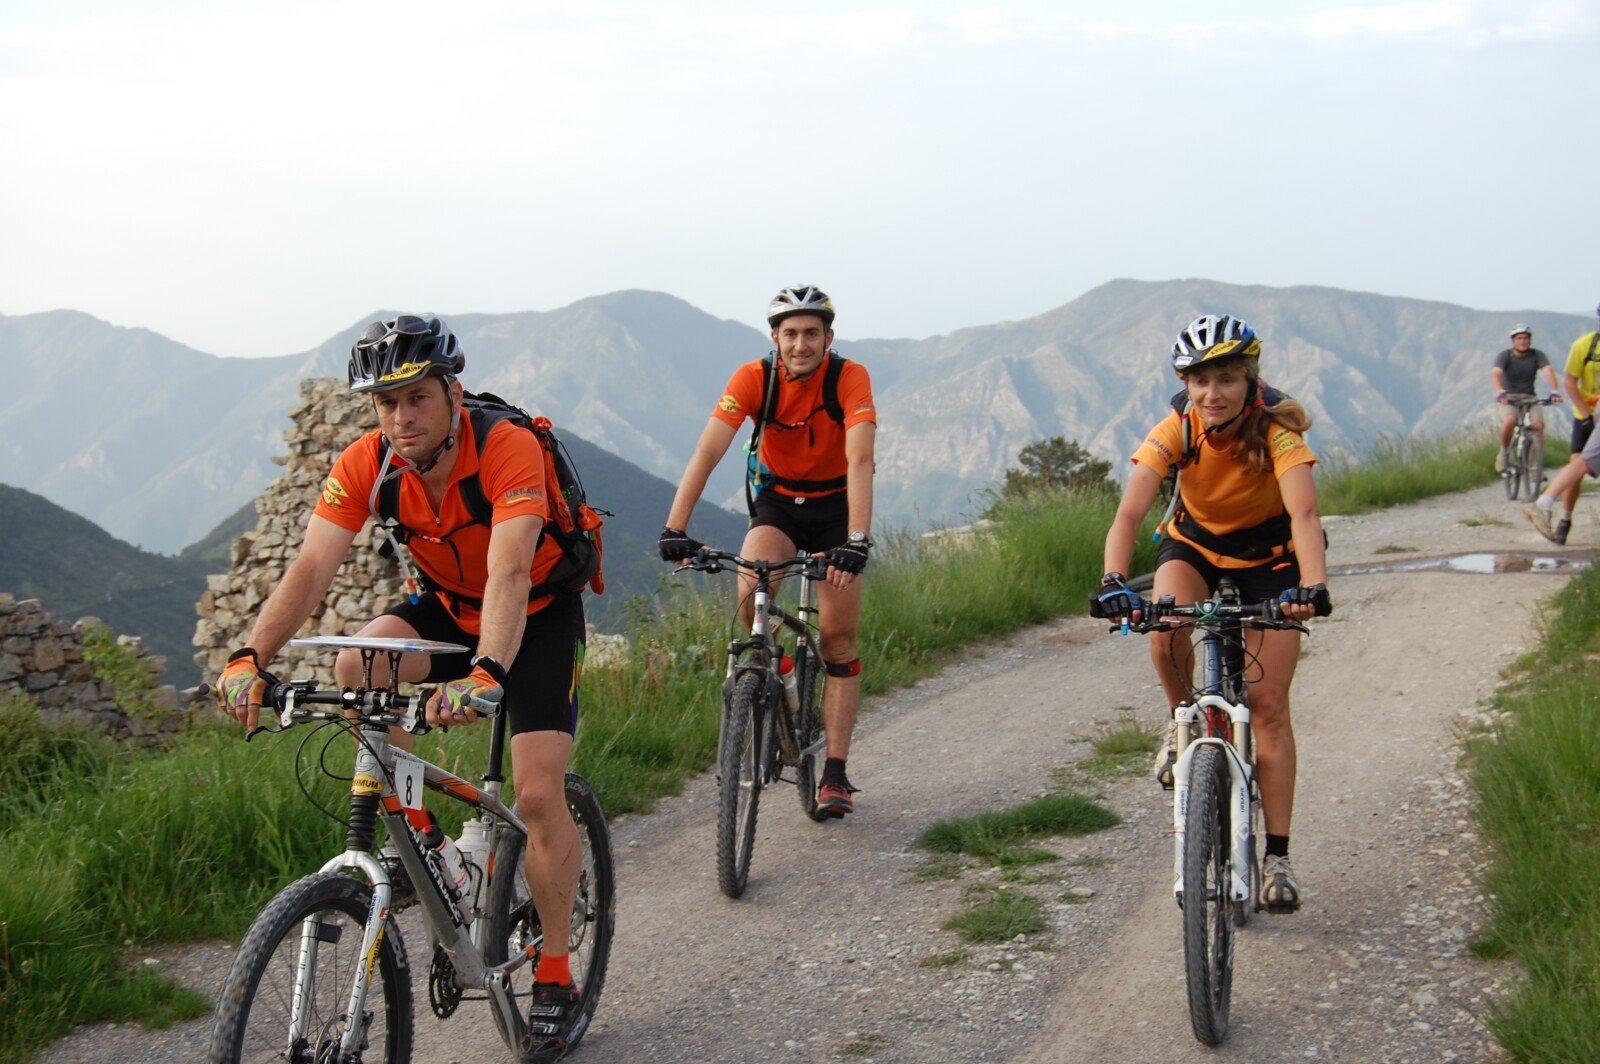 Relieve stress: Image of three people riding bicycles in the mountains, living a healthy lifestyle